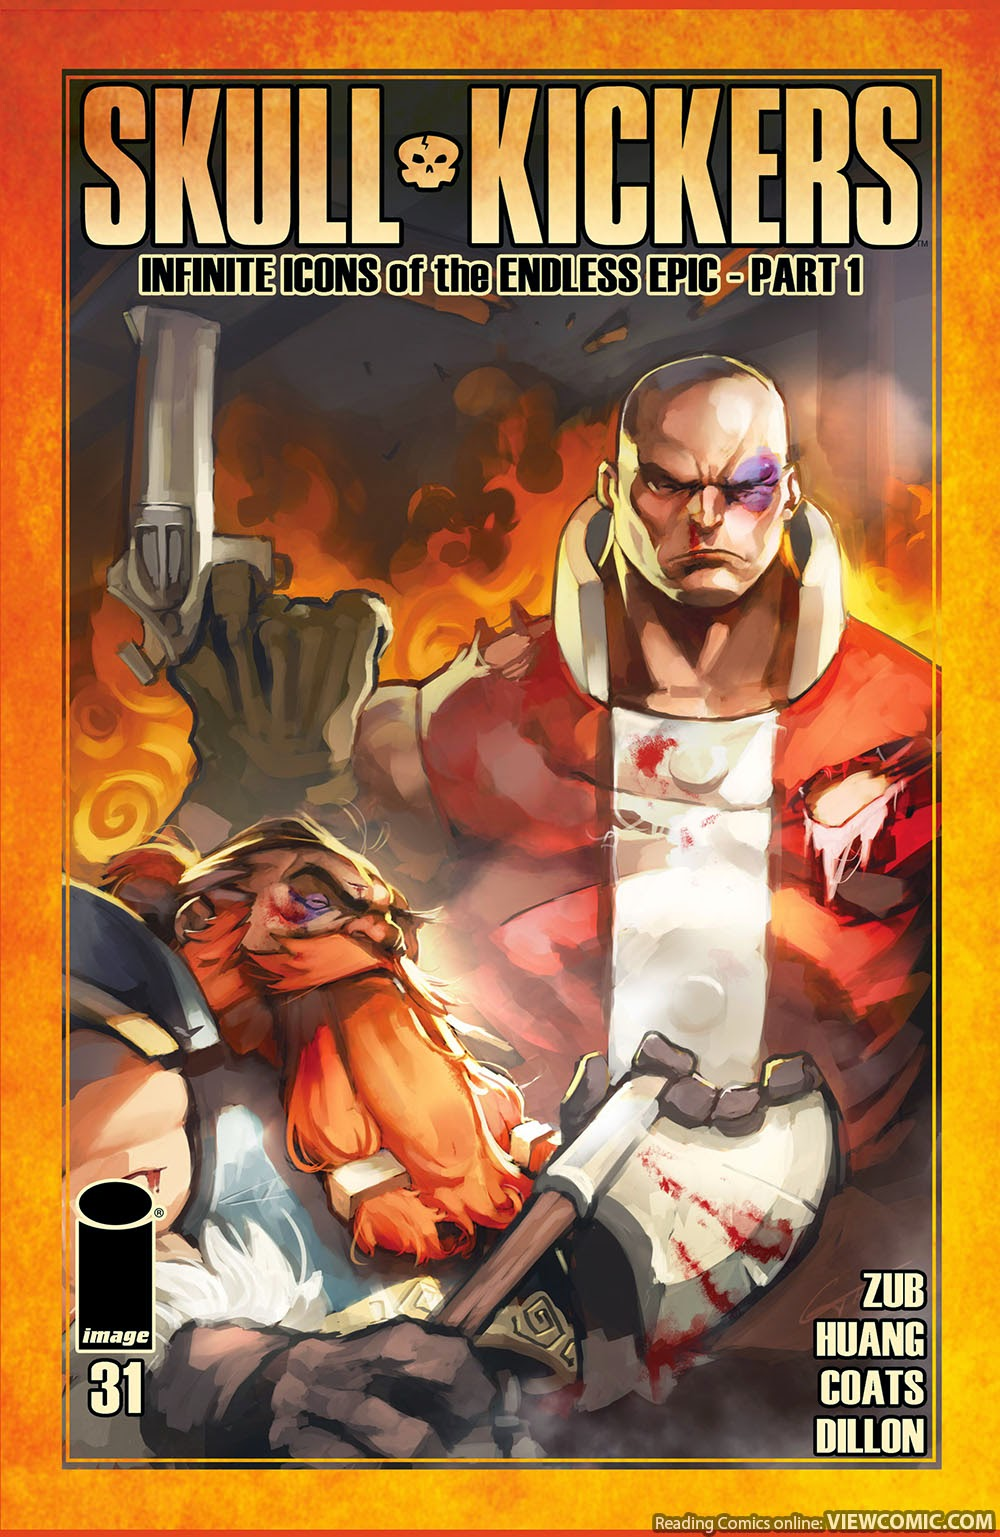 Skullkickers | Viewcomic reading comics online for free 2019